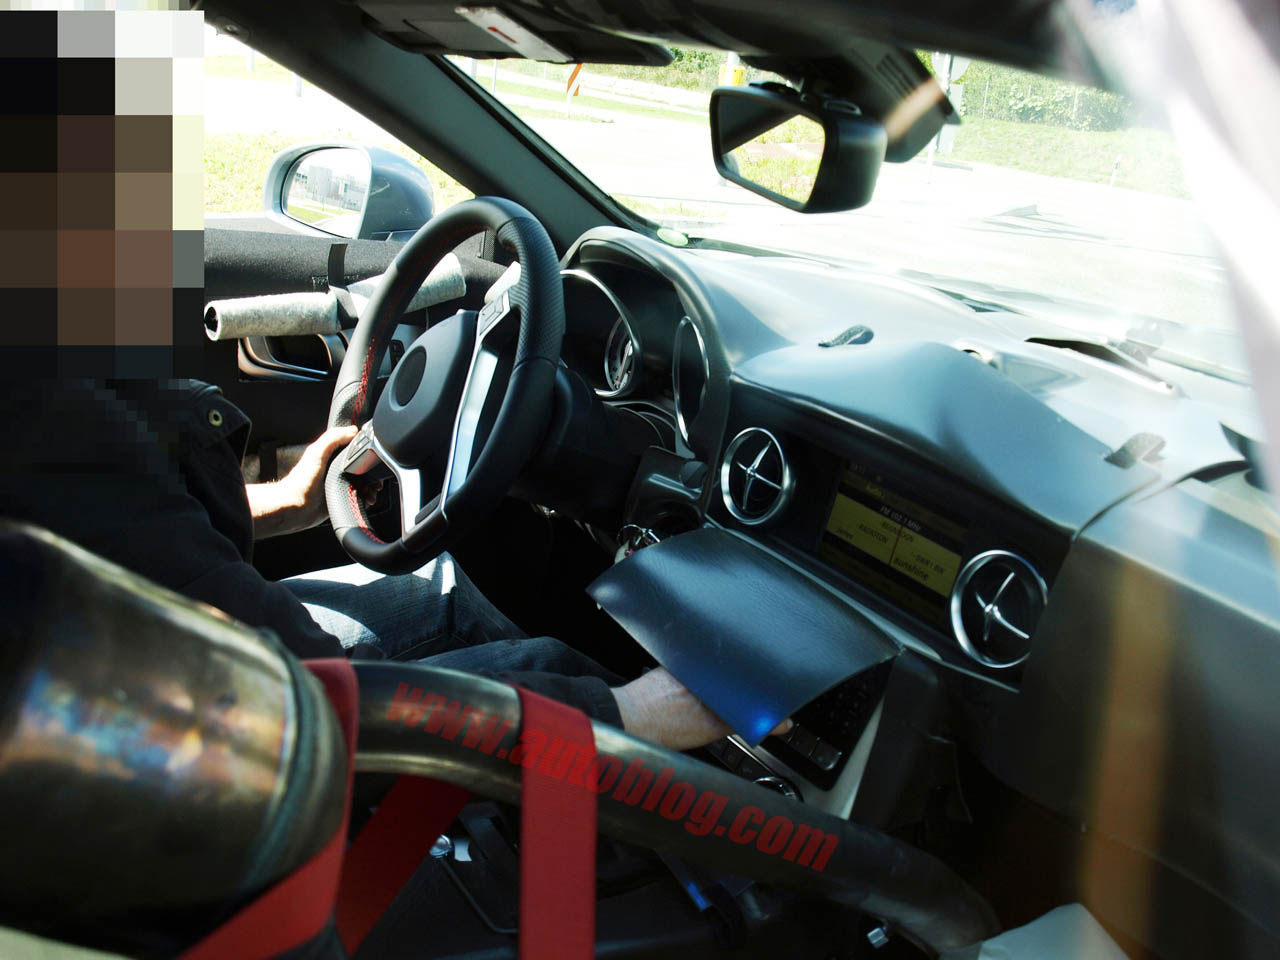 Mercedes-Benz SLK interior spy shot